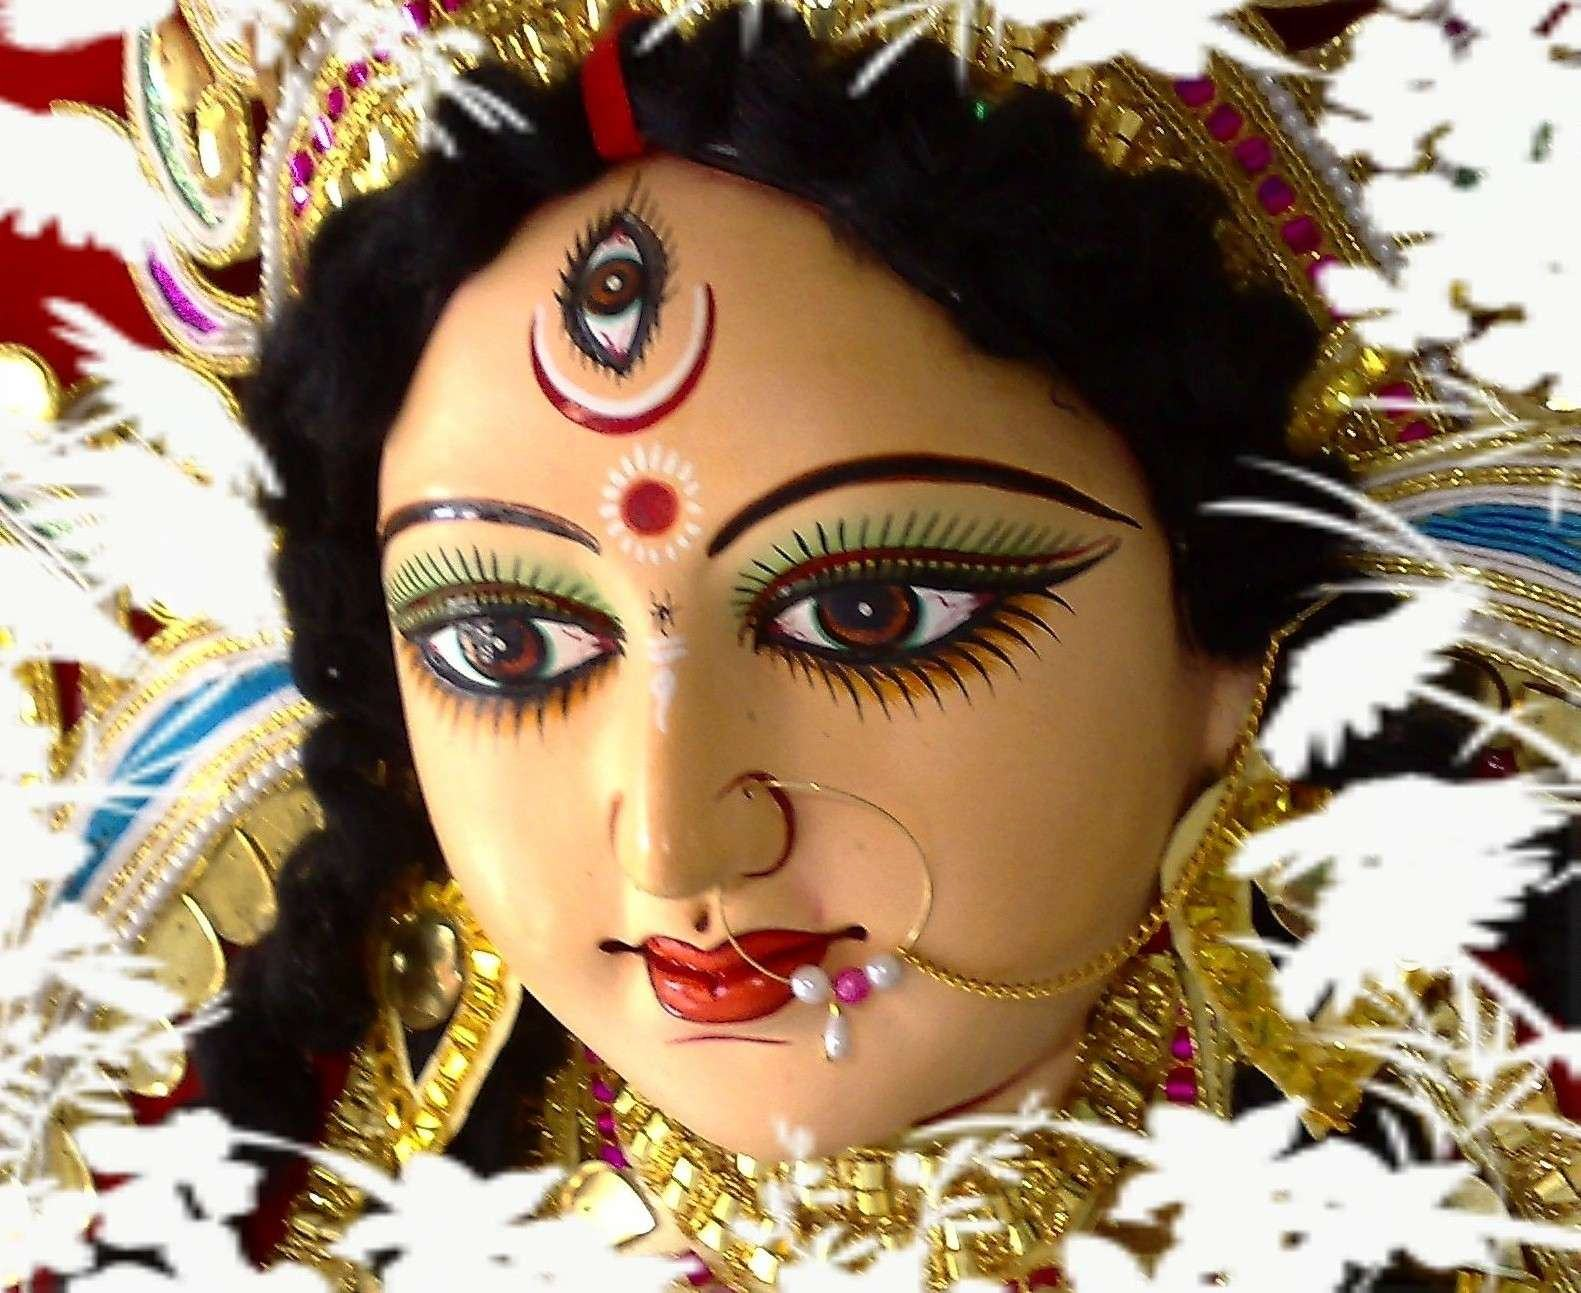 Simple Wallpaper Lord Durga - 43498_Durga-Maa-Pictures-Goddess-Wallpapers_1581x1293  You Should Have_789743.jpg